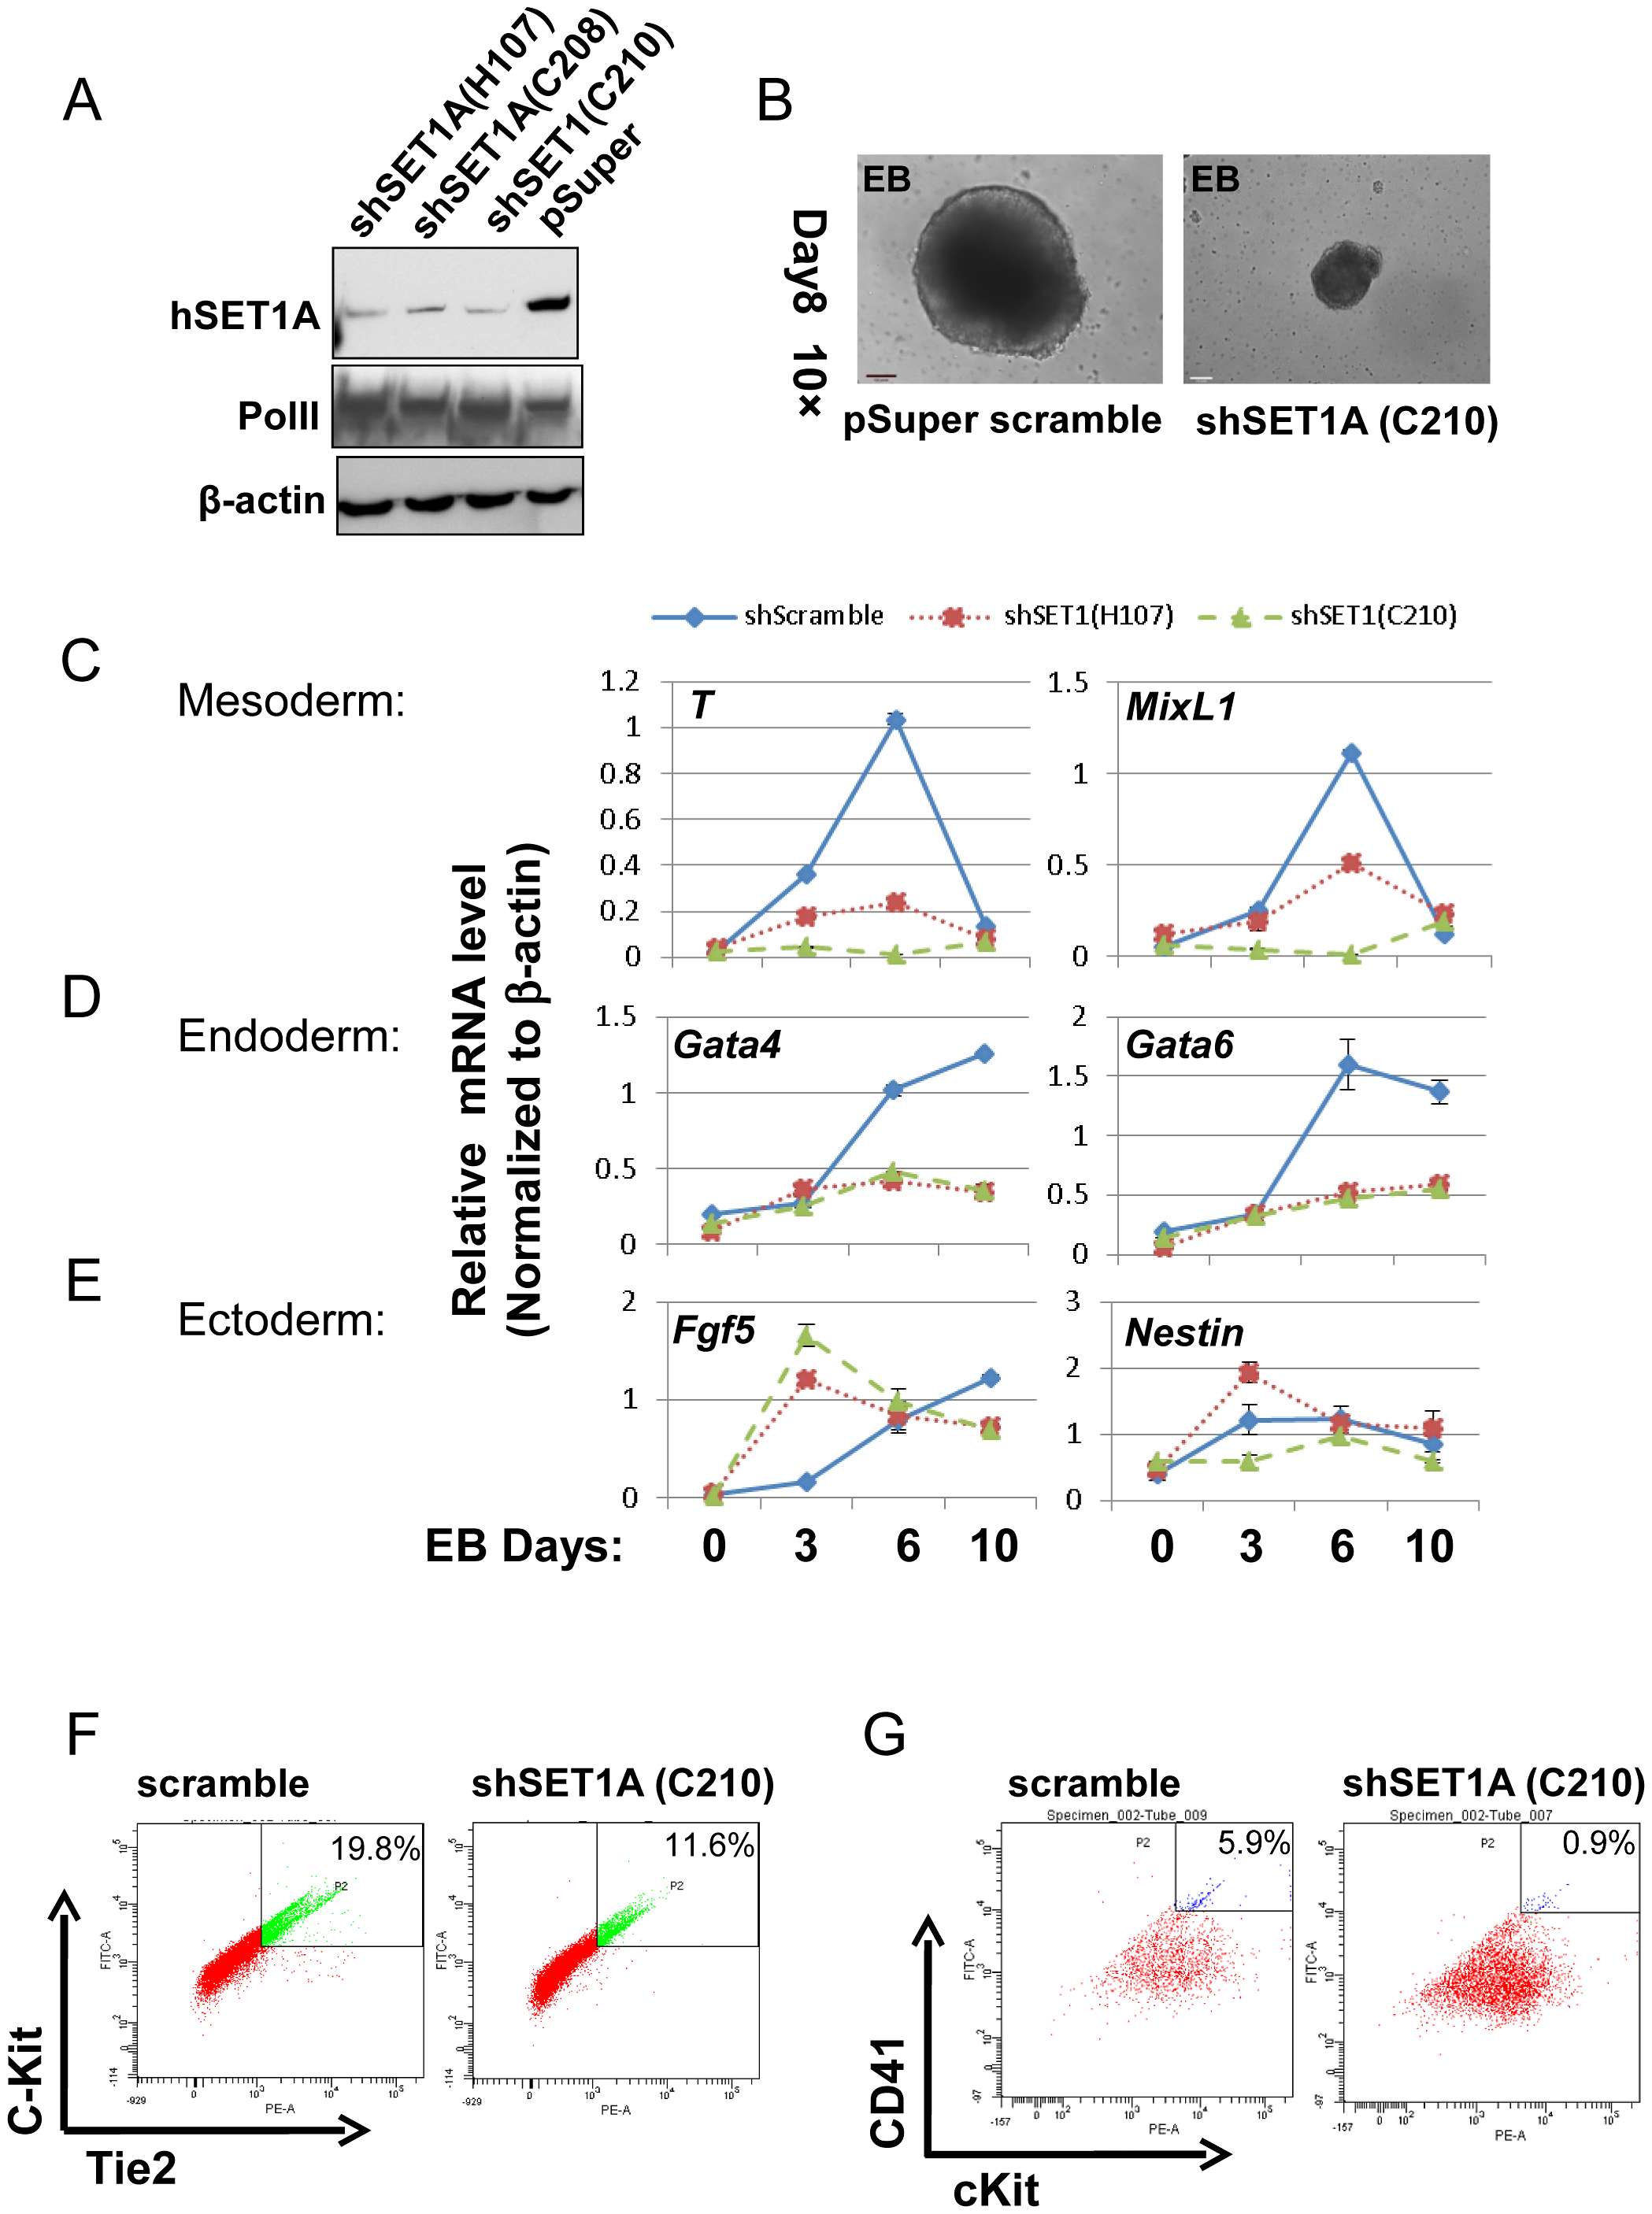 Effect of hSET1A depletion on ESC mesoderm differentiation and hematopoiesis.